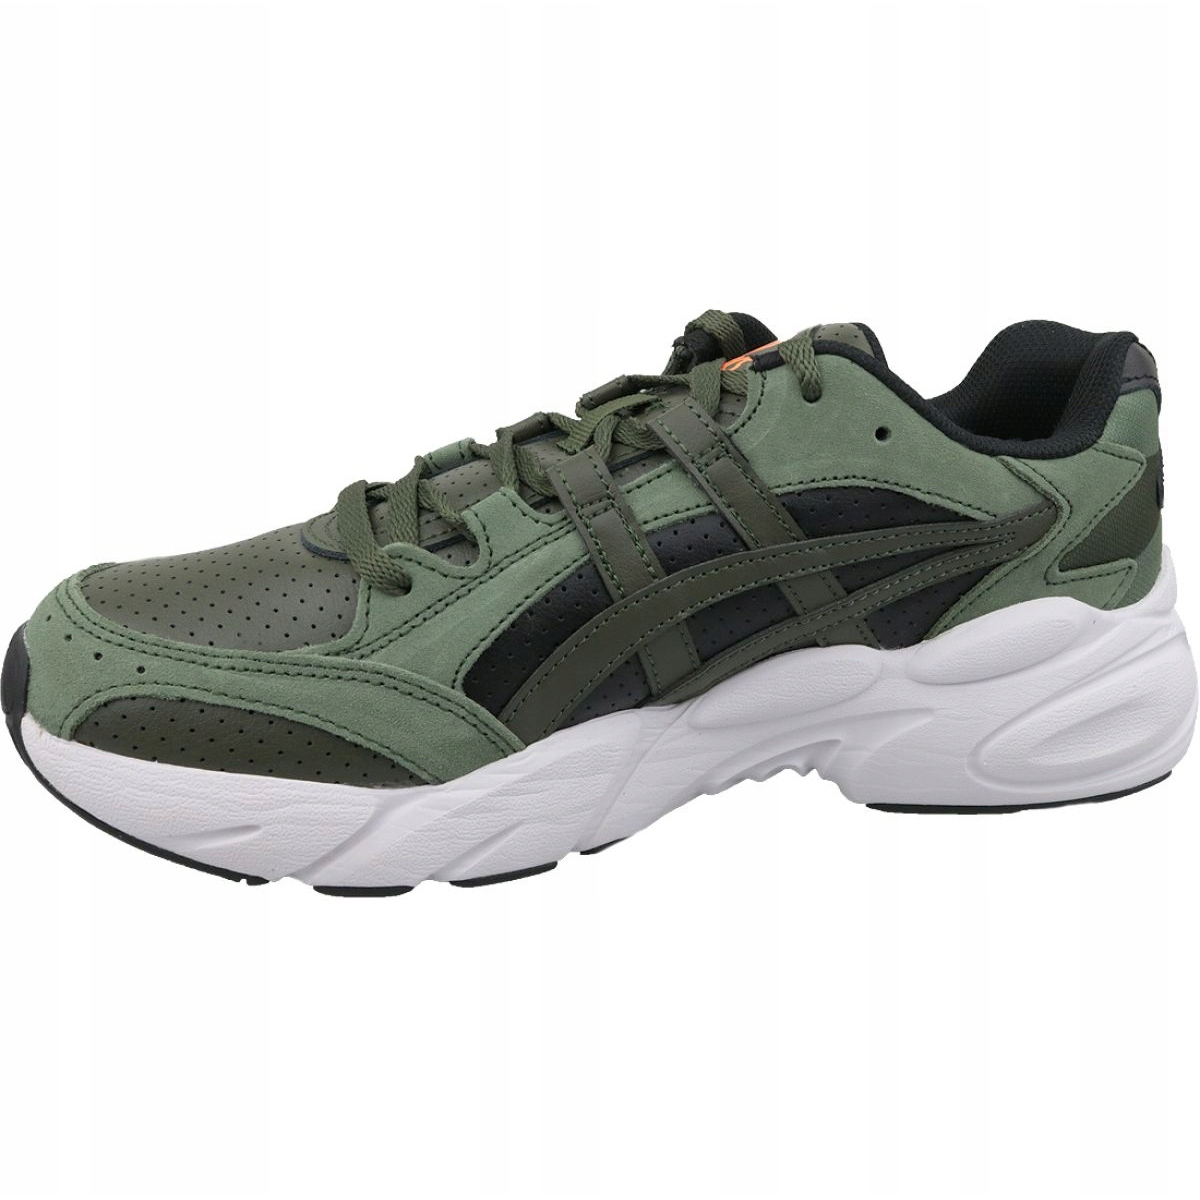 green asics shoes